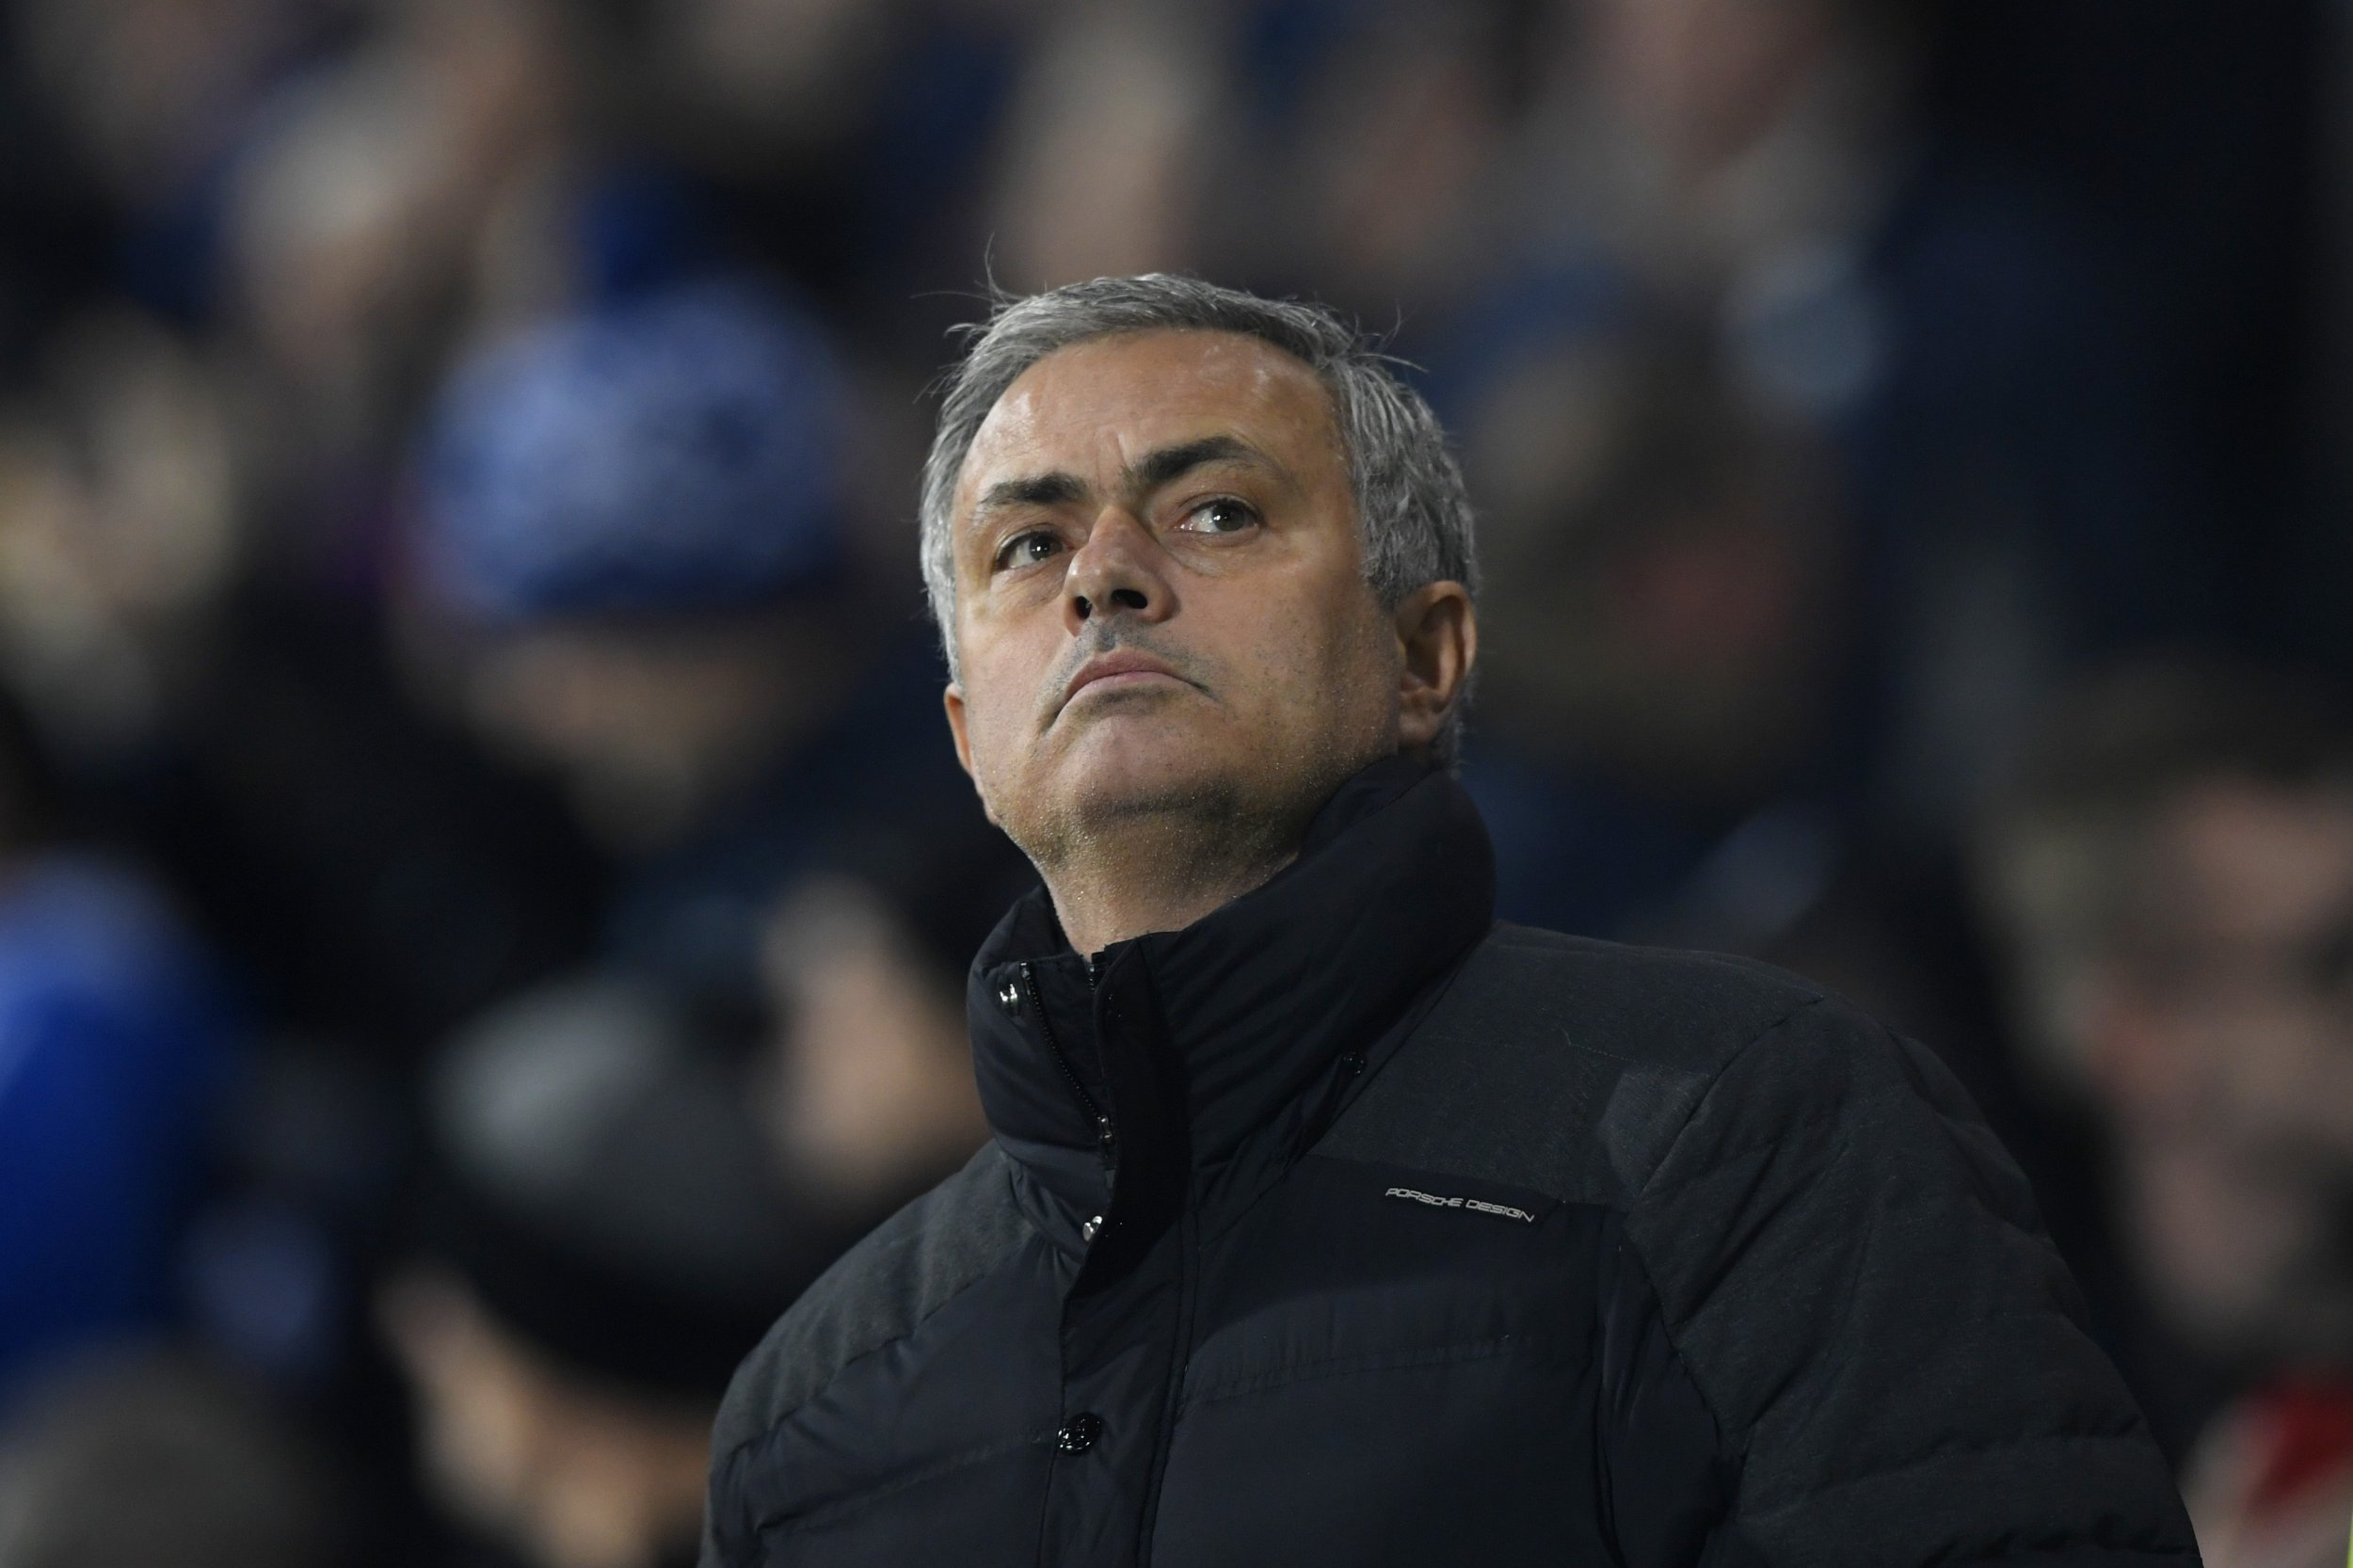 Manchester United manager Jose Mourinho at The Hawthorns, West Bromwich, December 17.